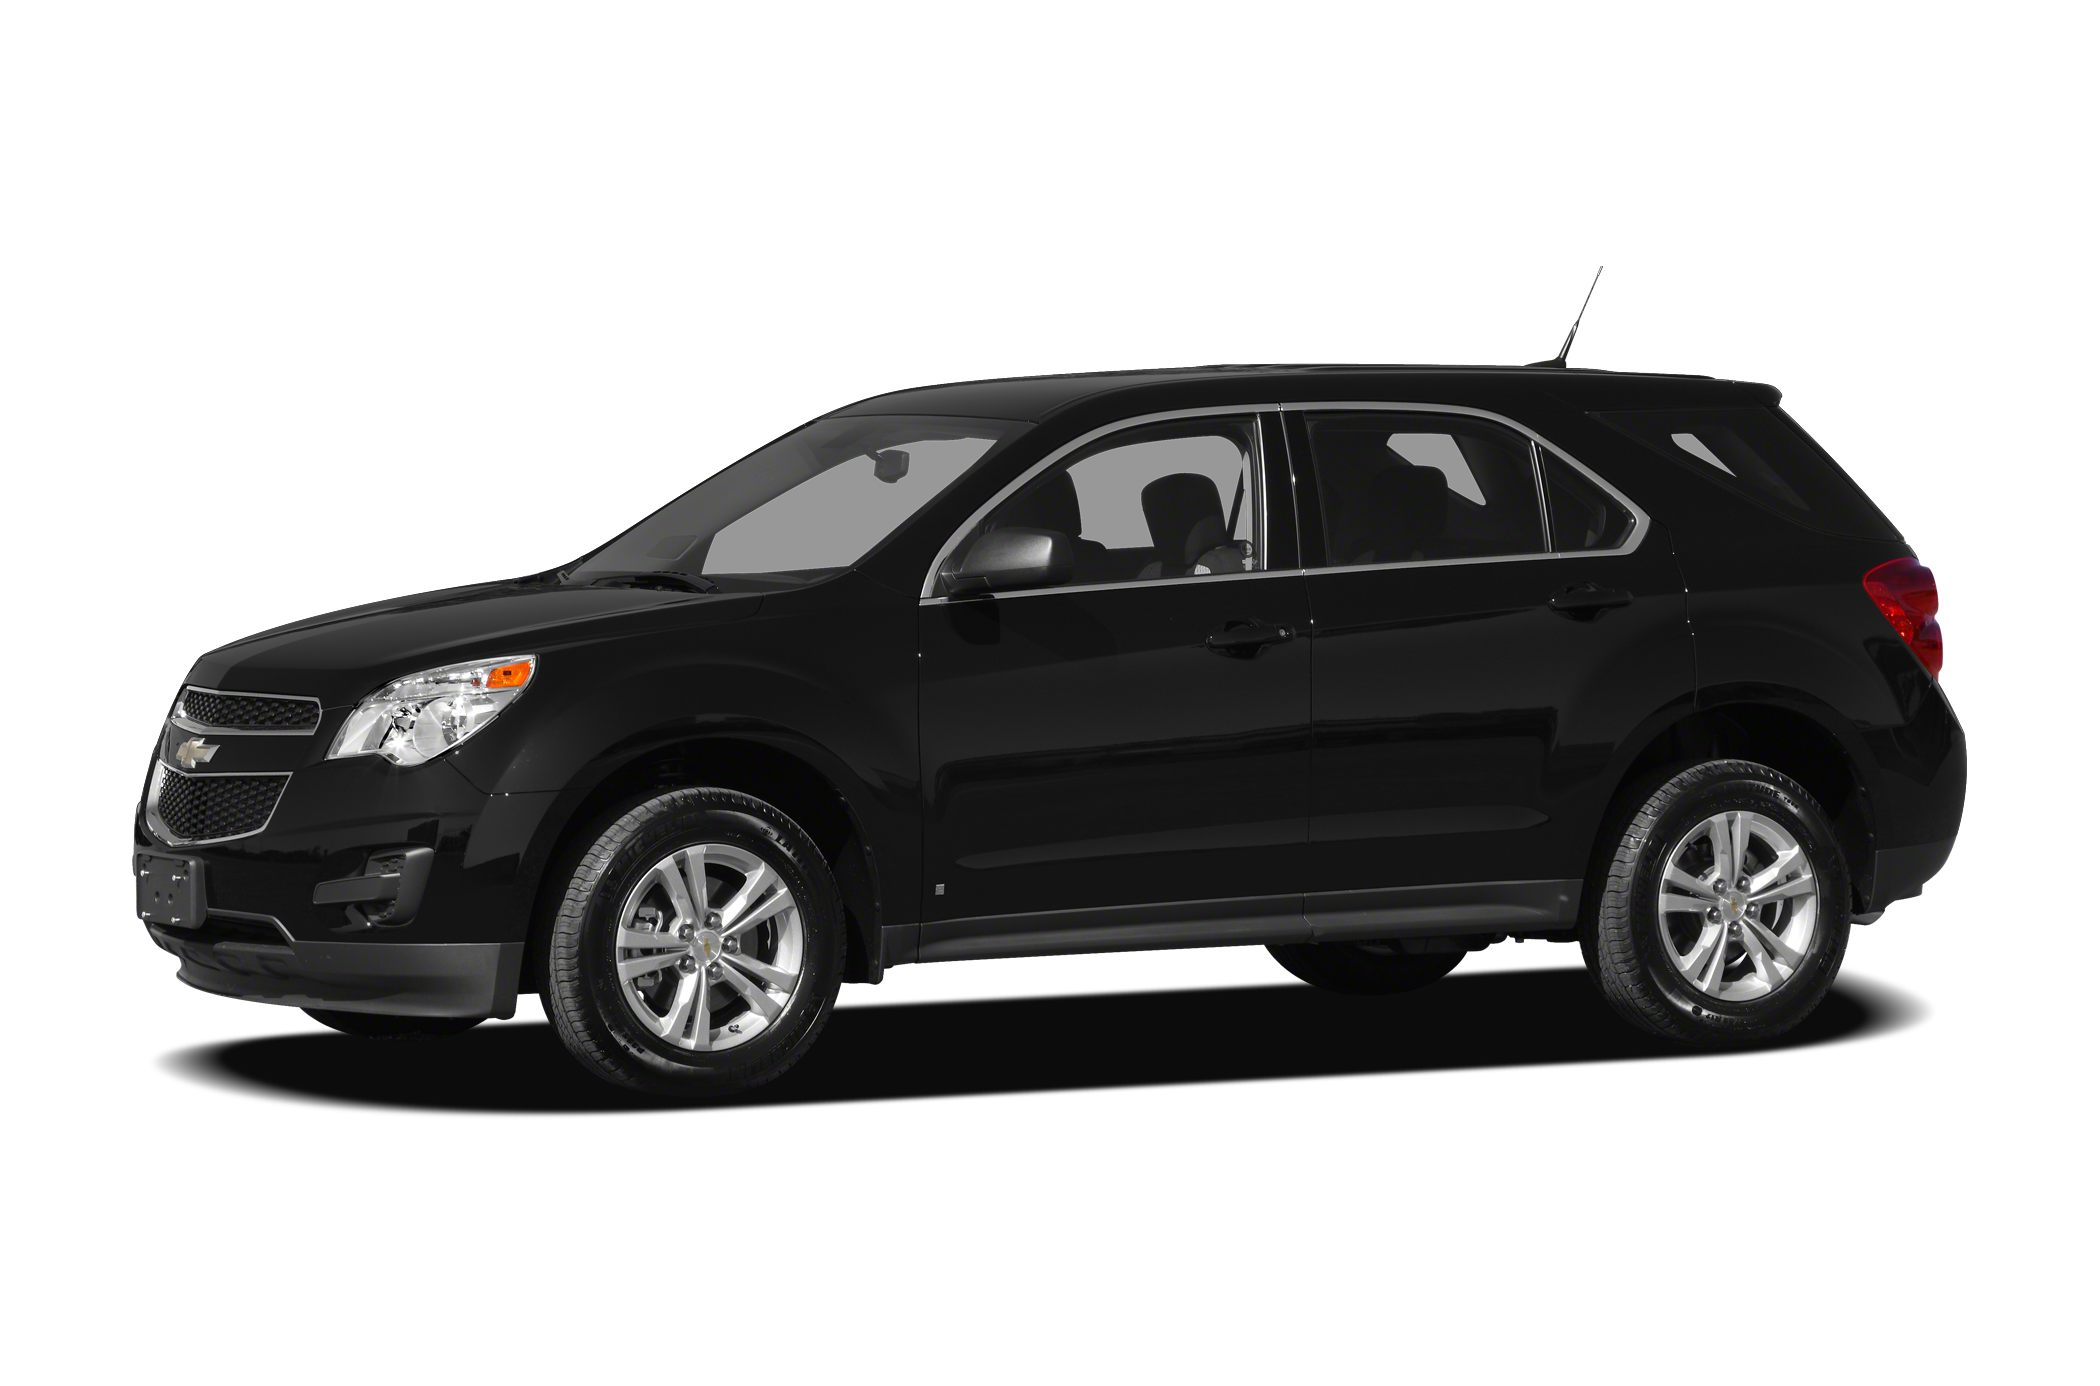 2012 Chevrolet Equinox LS SUV for sale in Hermiston for $0 with 41,669 miles